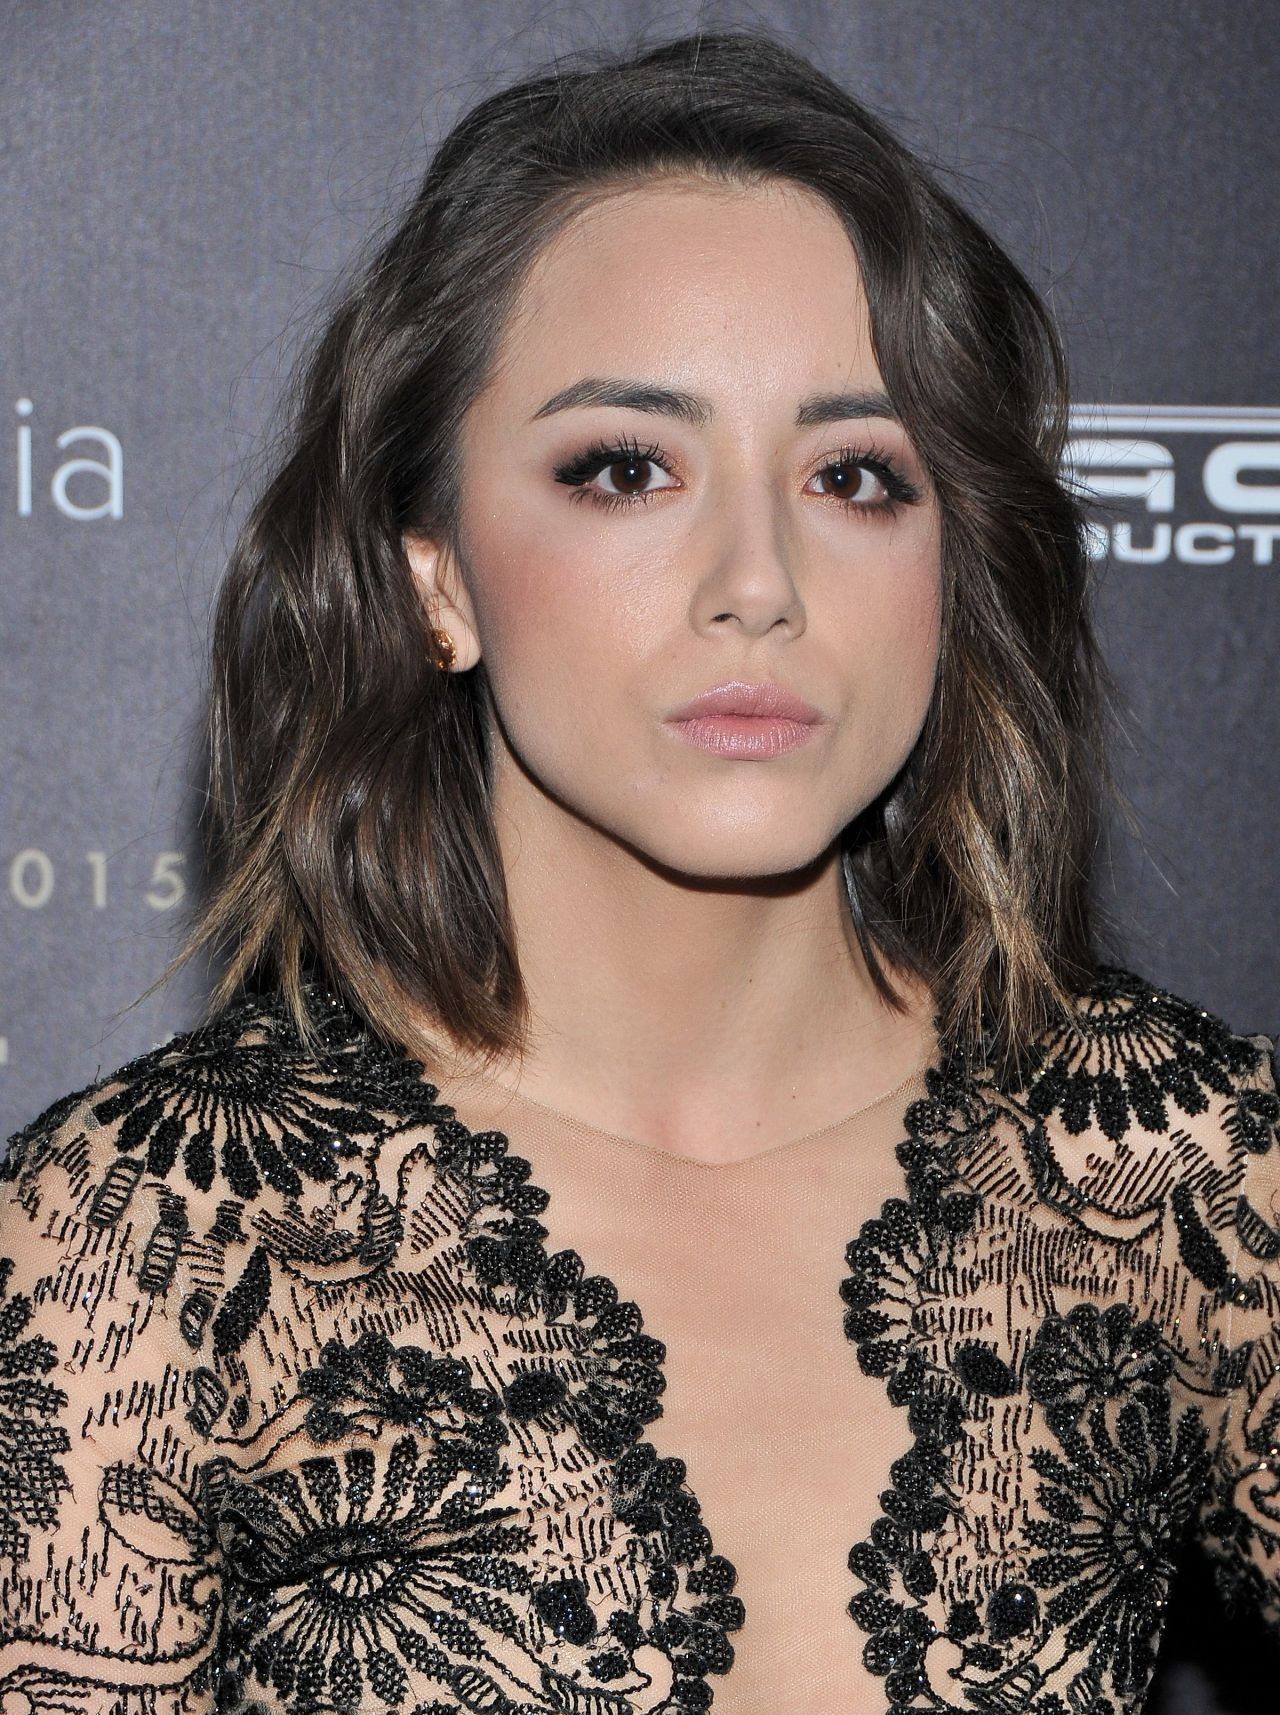 ... Gala – Asian American Awards at The <b>Beverly Hilton</b> Hotel in Los Angeles - chloe-bennet-unforgettable-gala-asian-american-awards-at-the-beverly-hilton-hotel-in-los-angeles_7